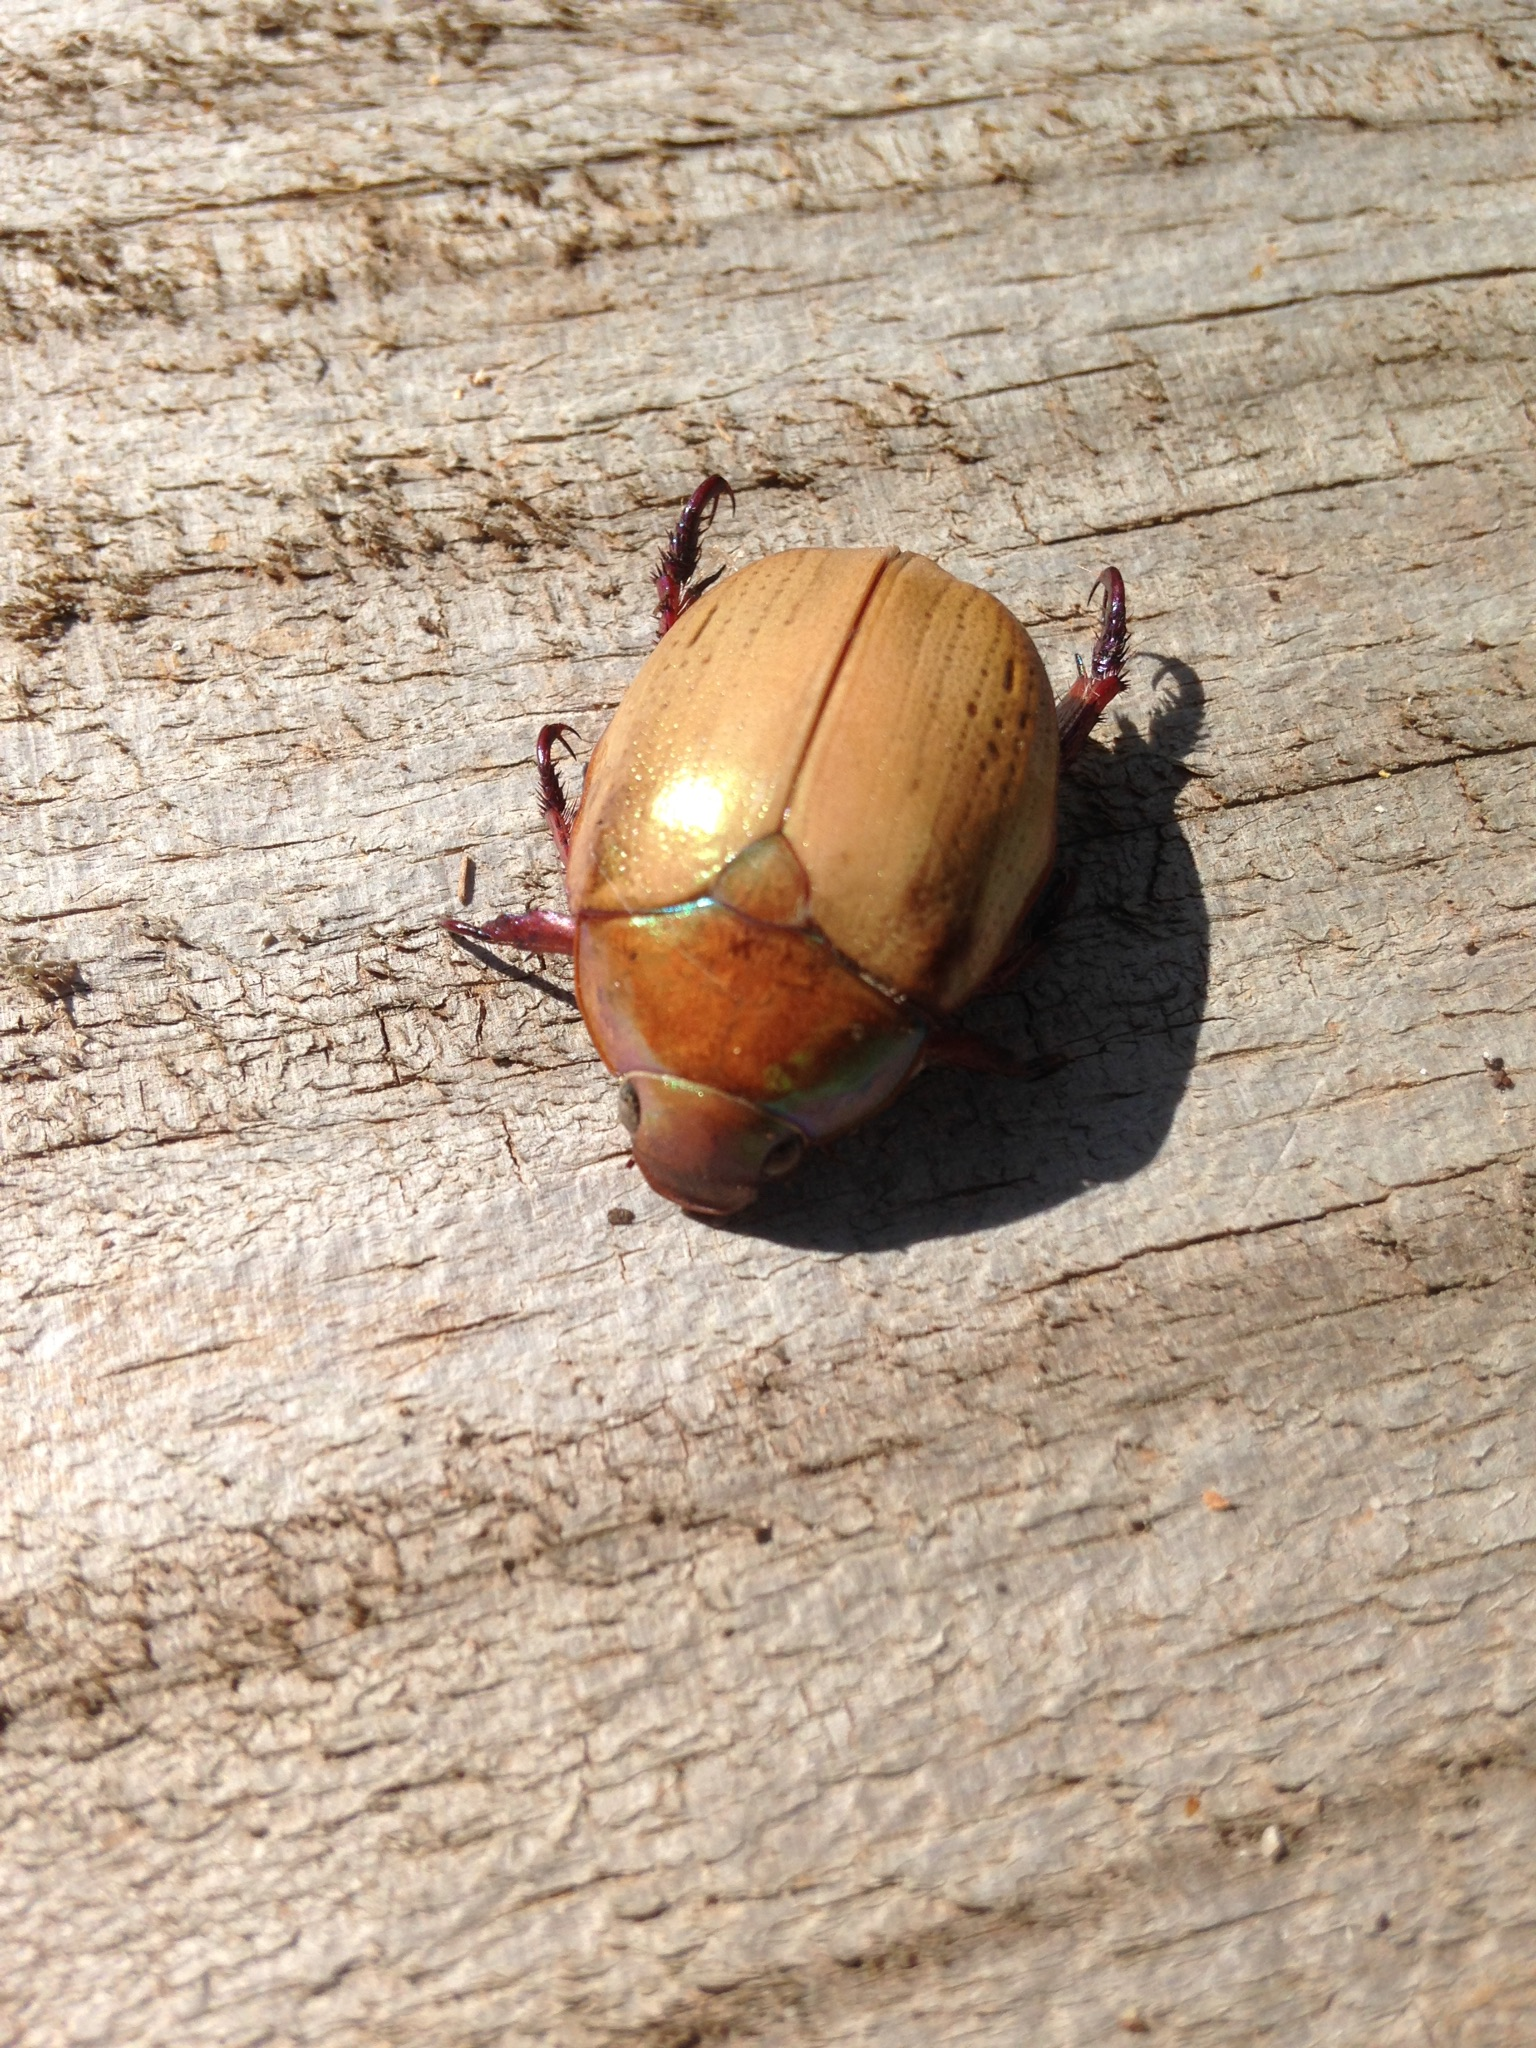 christmas beetle (Order: Coleoptera) photo by Kaye